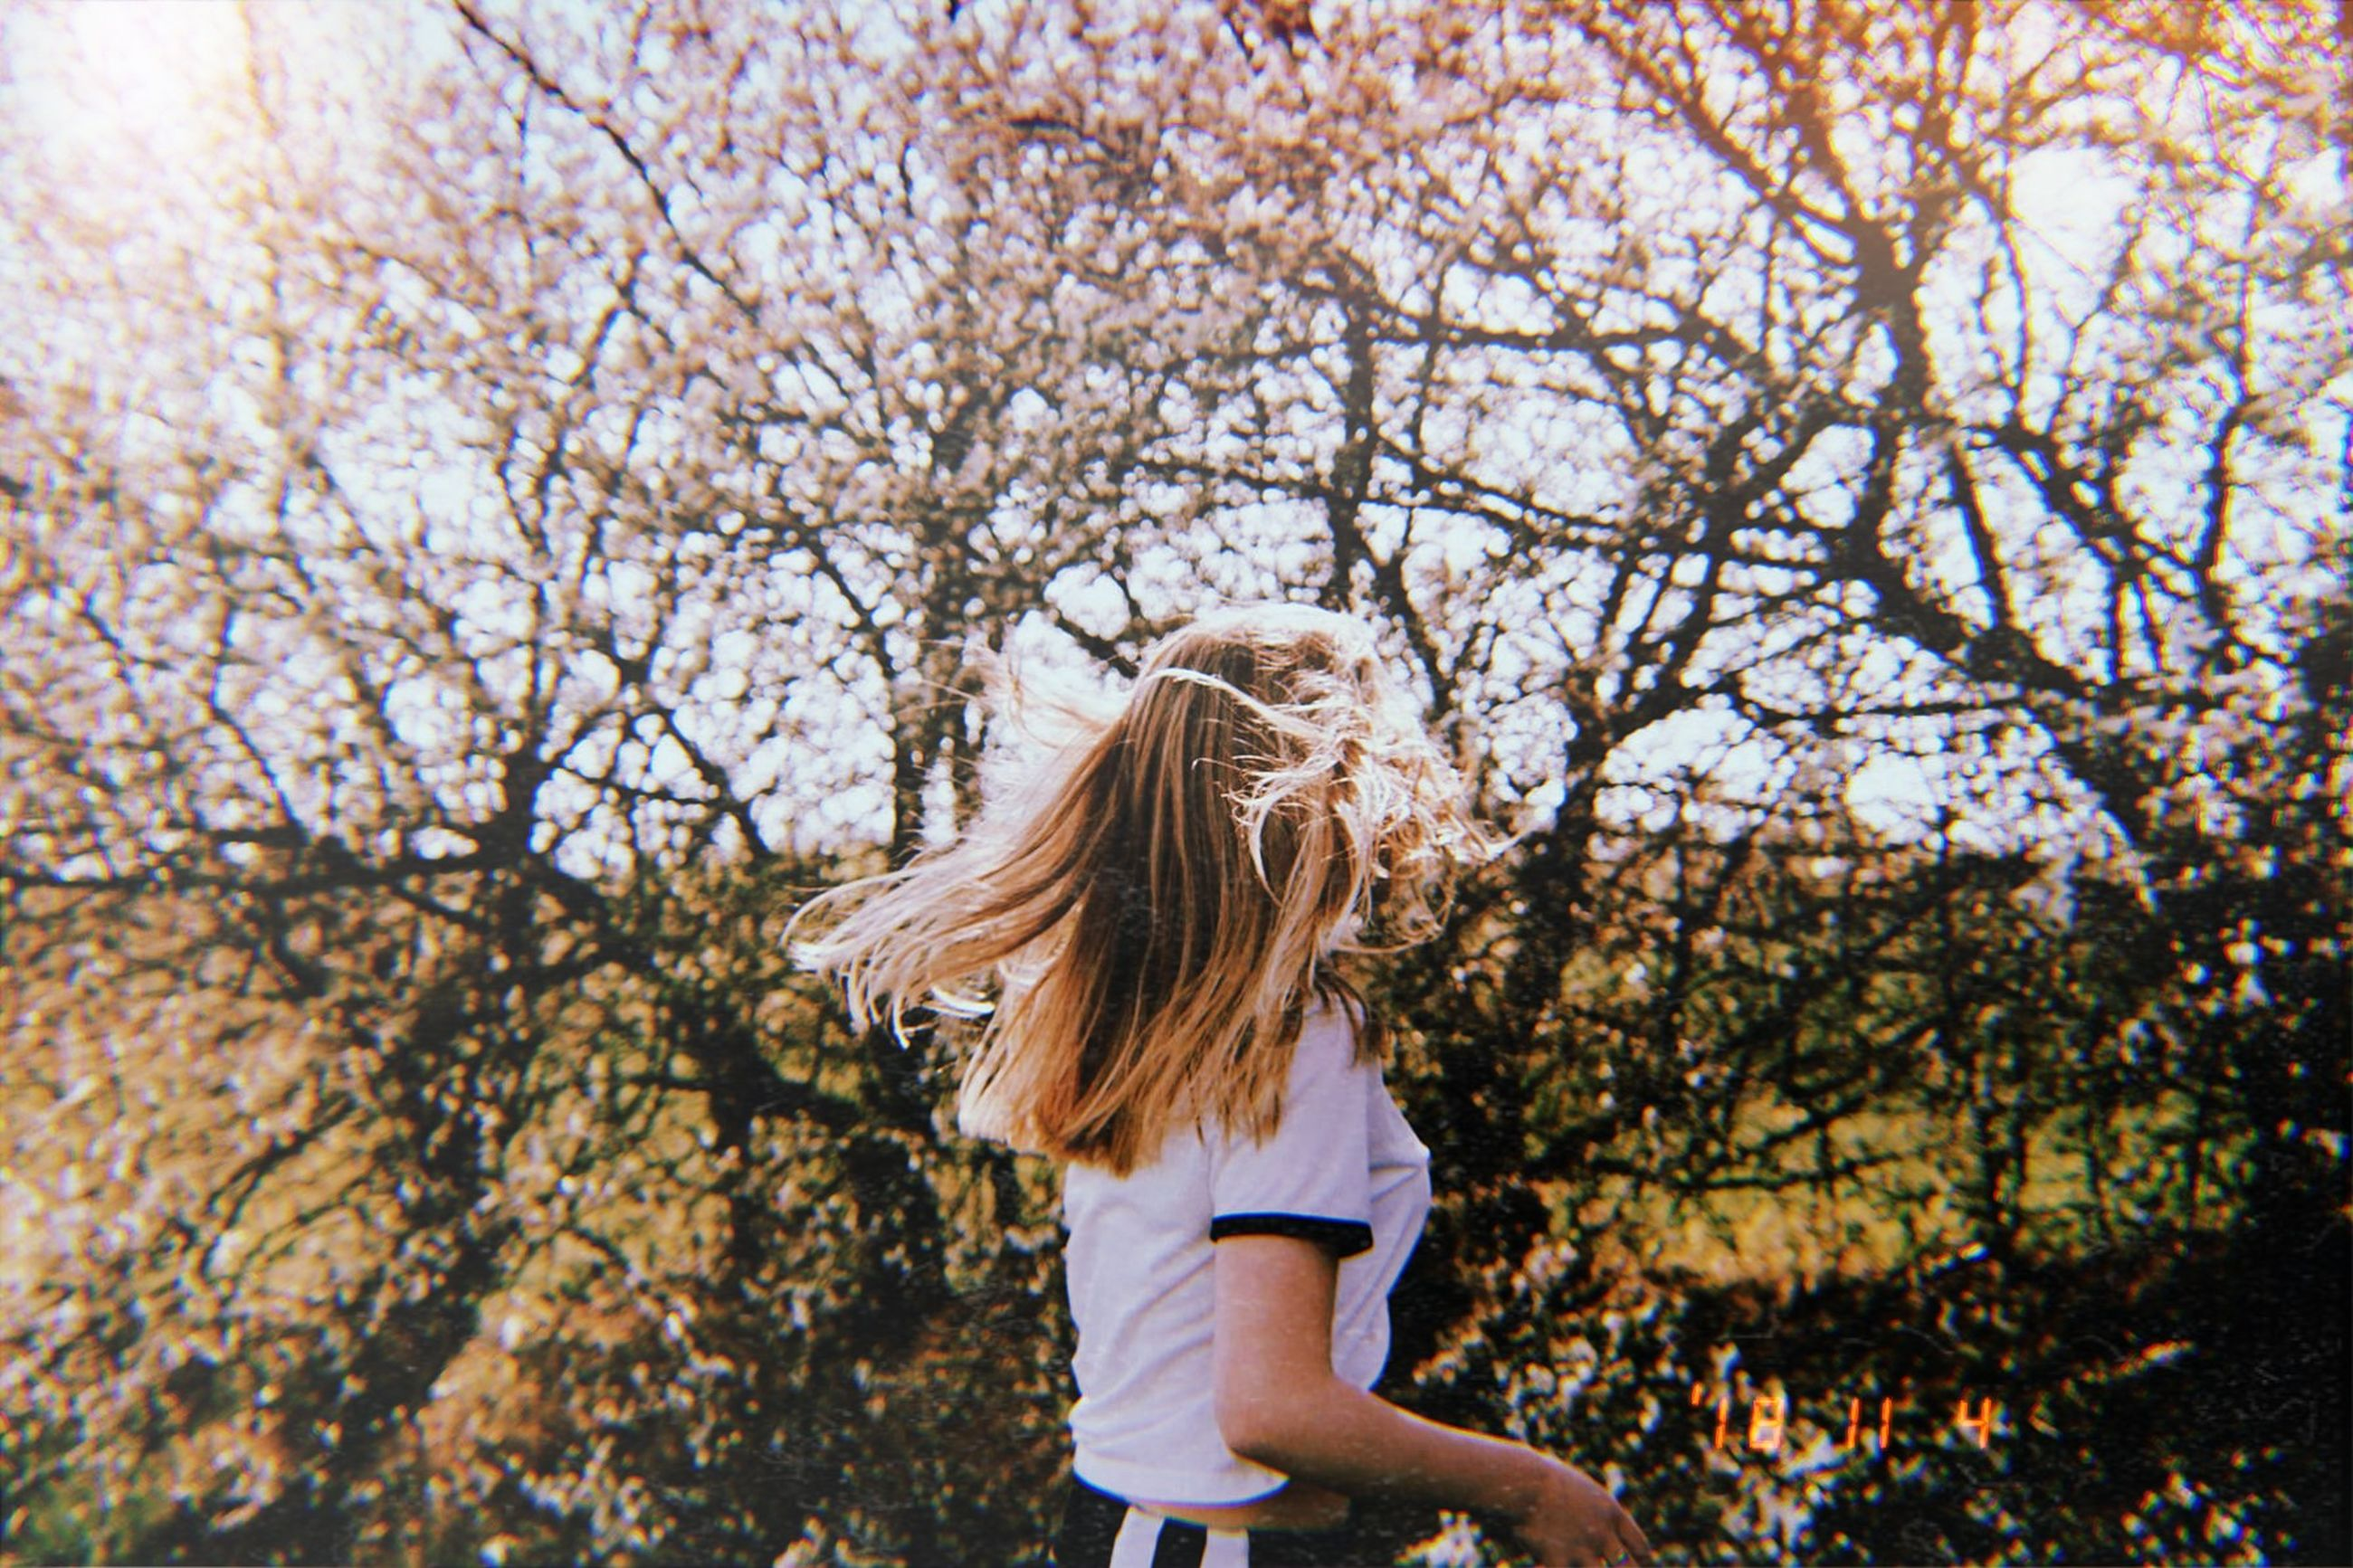 hair, long hair, tree, hairstyle, one person, blond hair, plant, young adult, adult, nature, motion, women, day, casual clothing, autumn, tousled hair, clothing, outdoors, freedom, human hair, hair toss, change, wind, springtime